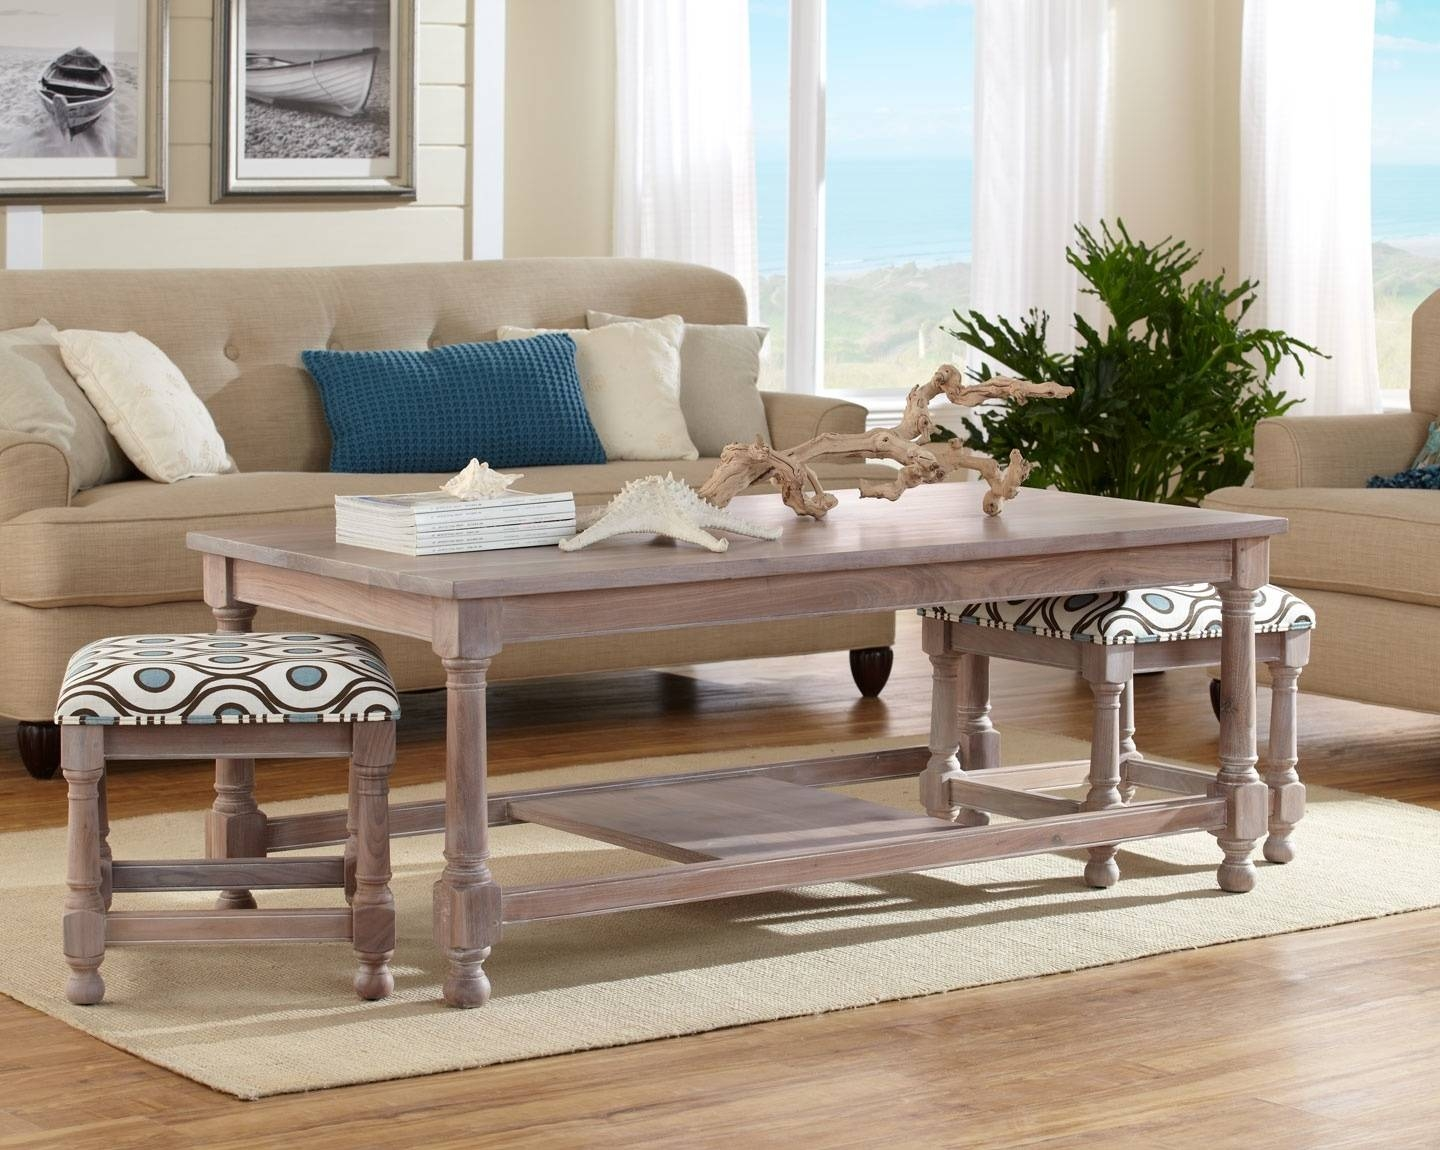 Coffee Table With Nesting Stools | Home Design Ideas with regard to Coffee Tables With Nesting Stools (Image 10 of 30)